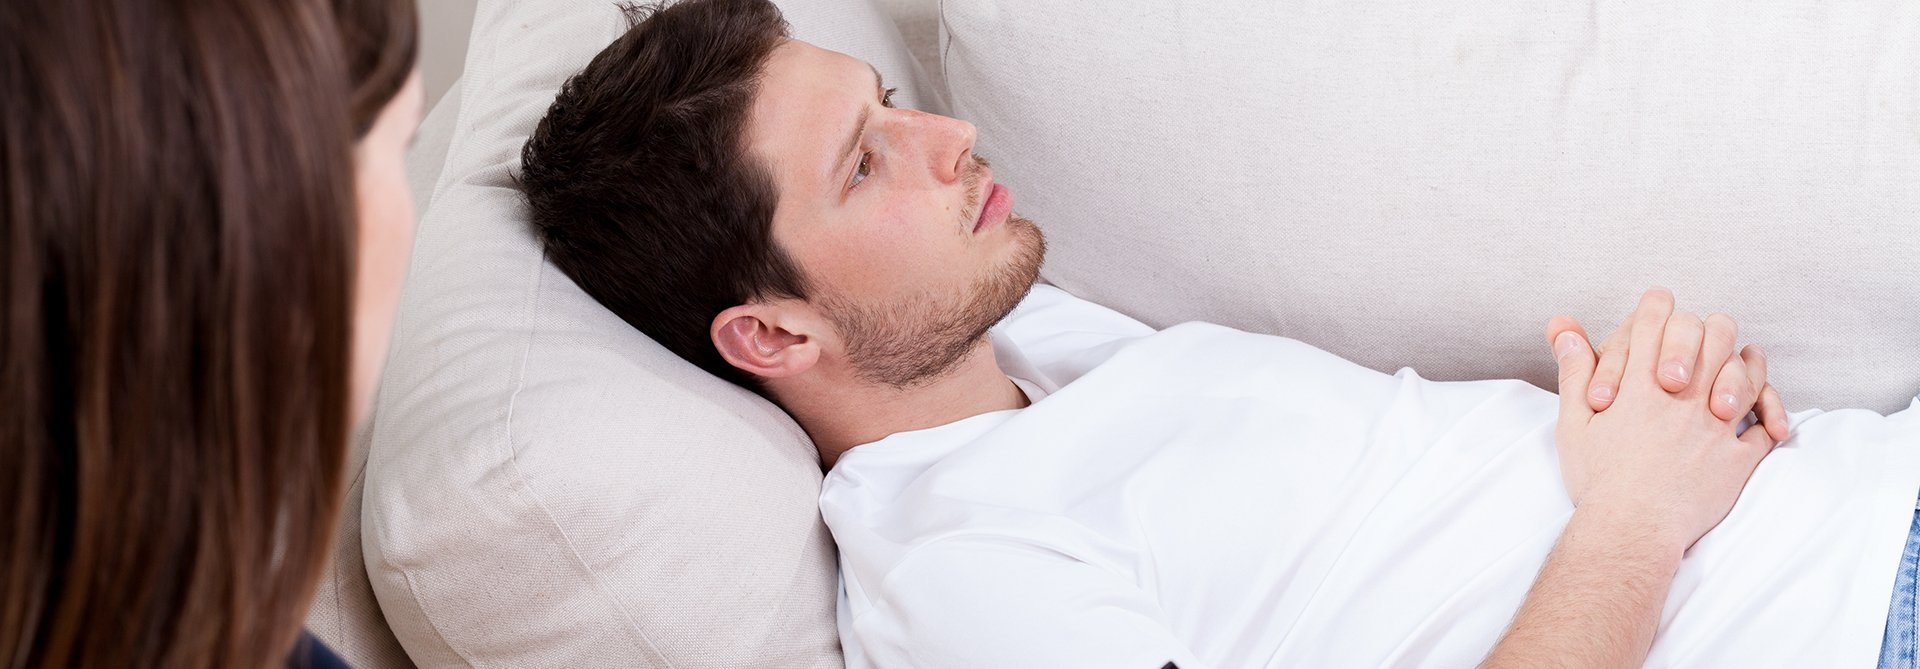 man receiving hypnotherapy for anxiety